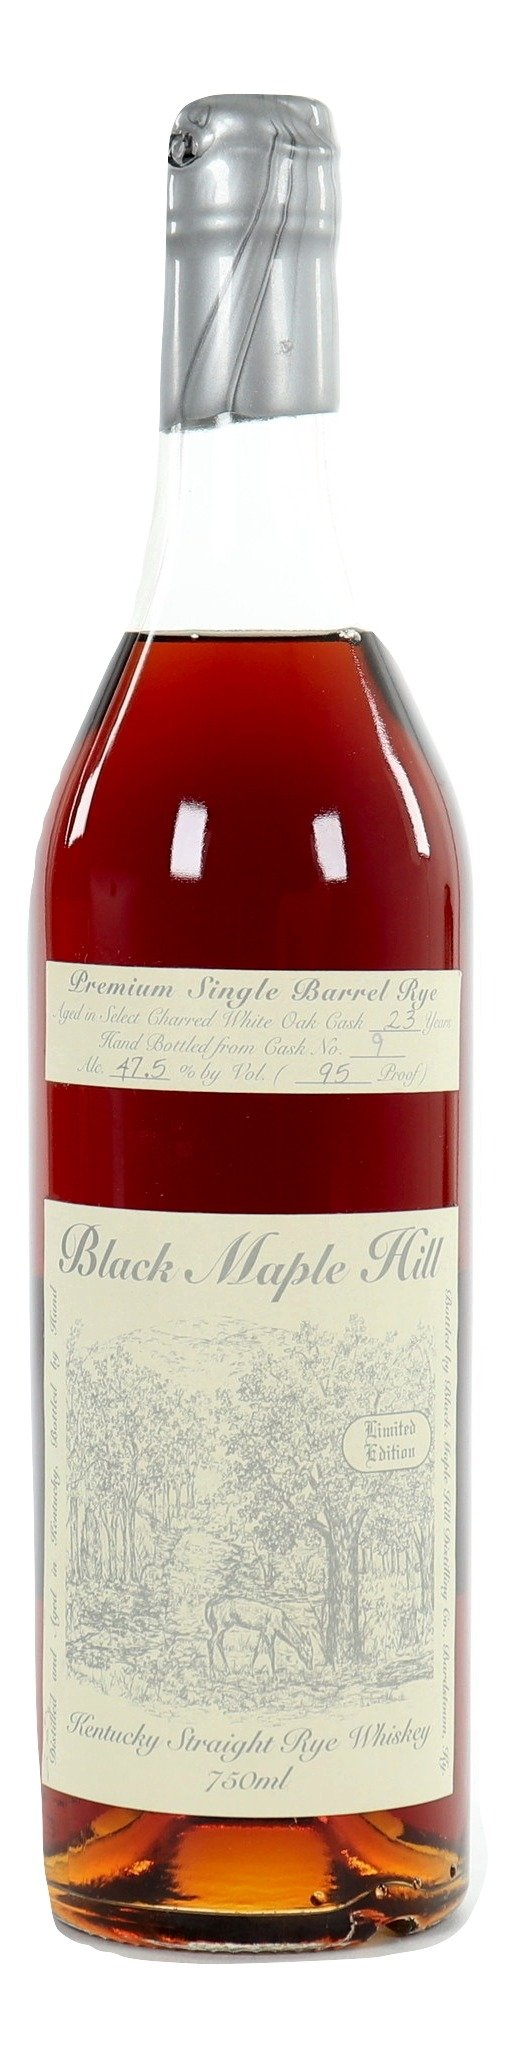 Black Maple Hill 23 Year Old Single Barrel Rye - Cask 9